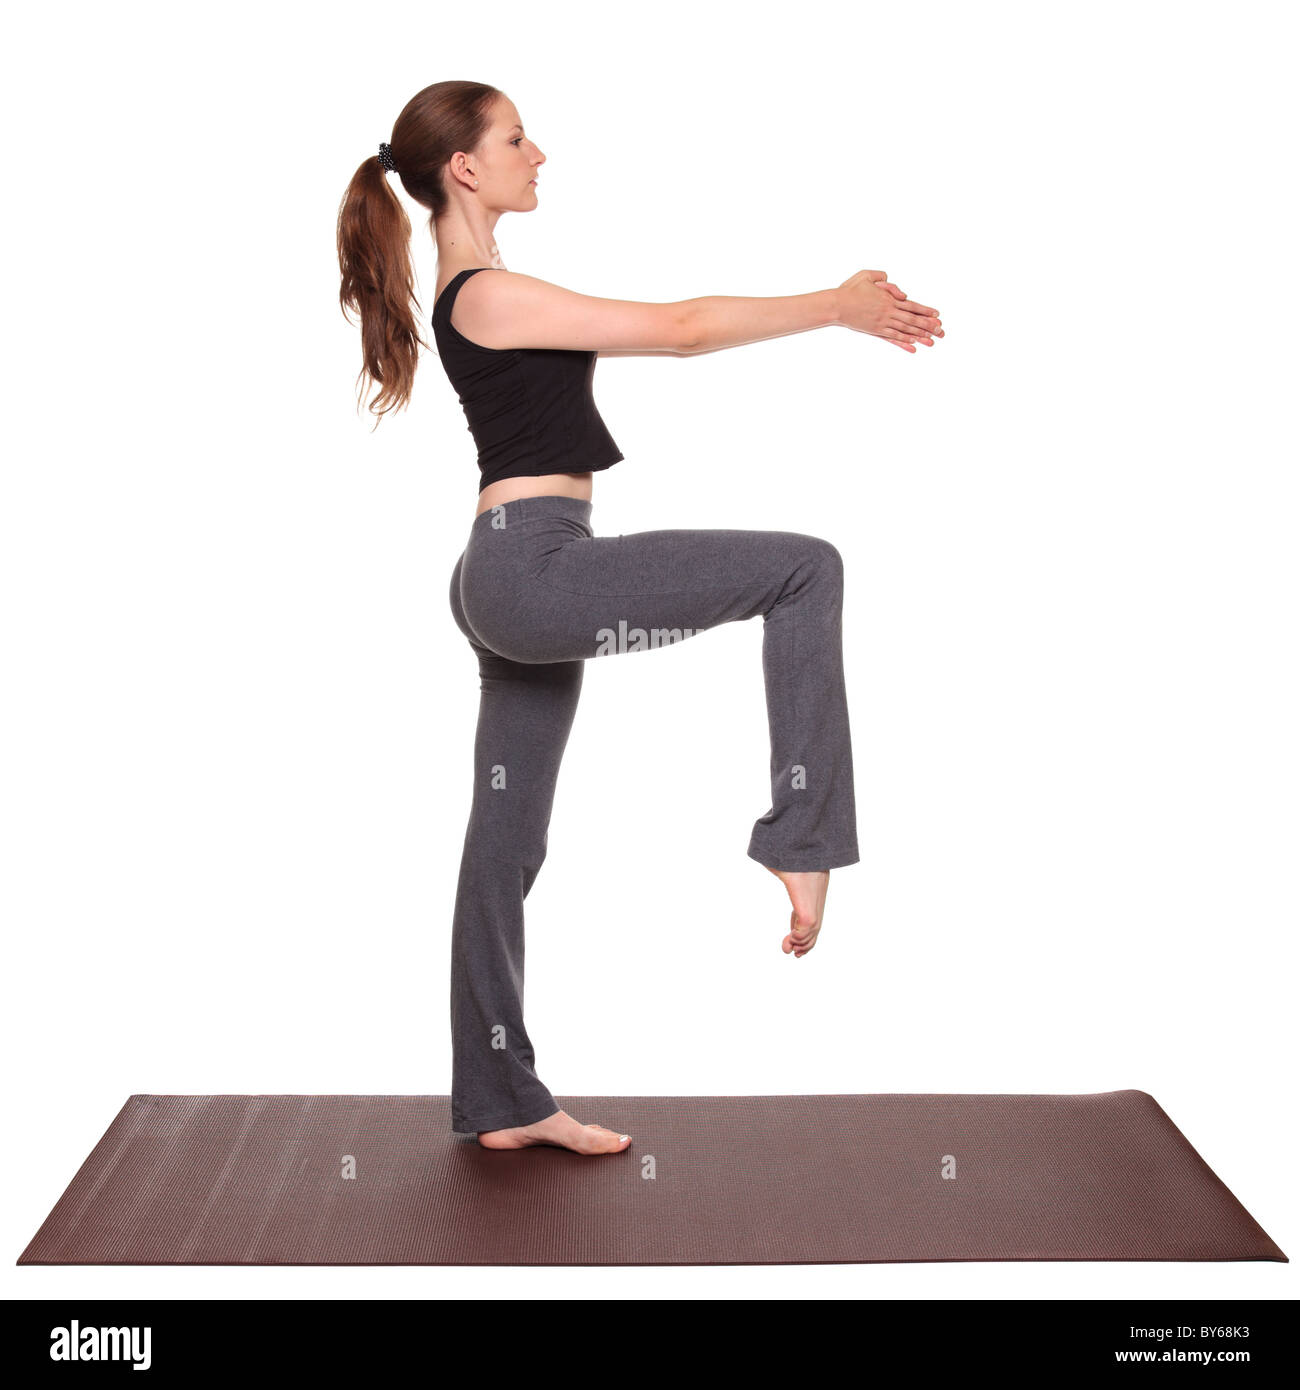 Isolated studio shot of a fit Caucasian woman holding the Stork Pose yoga position on an exercise mat. Stock Photo